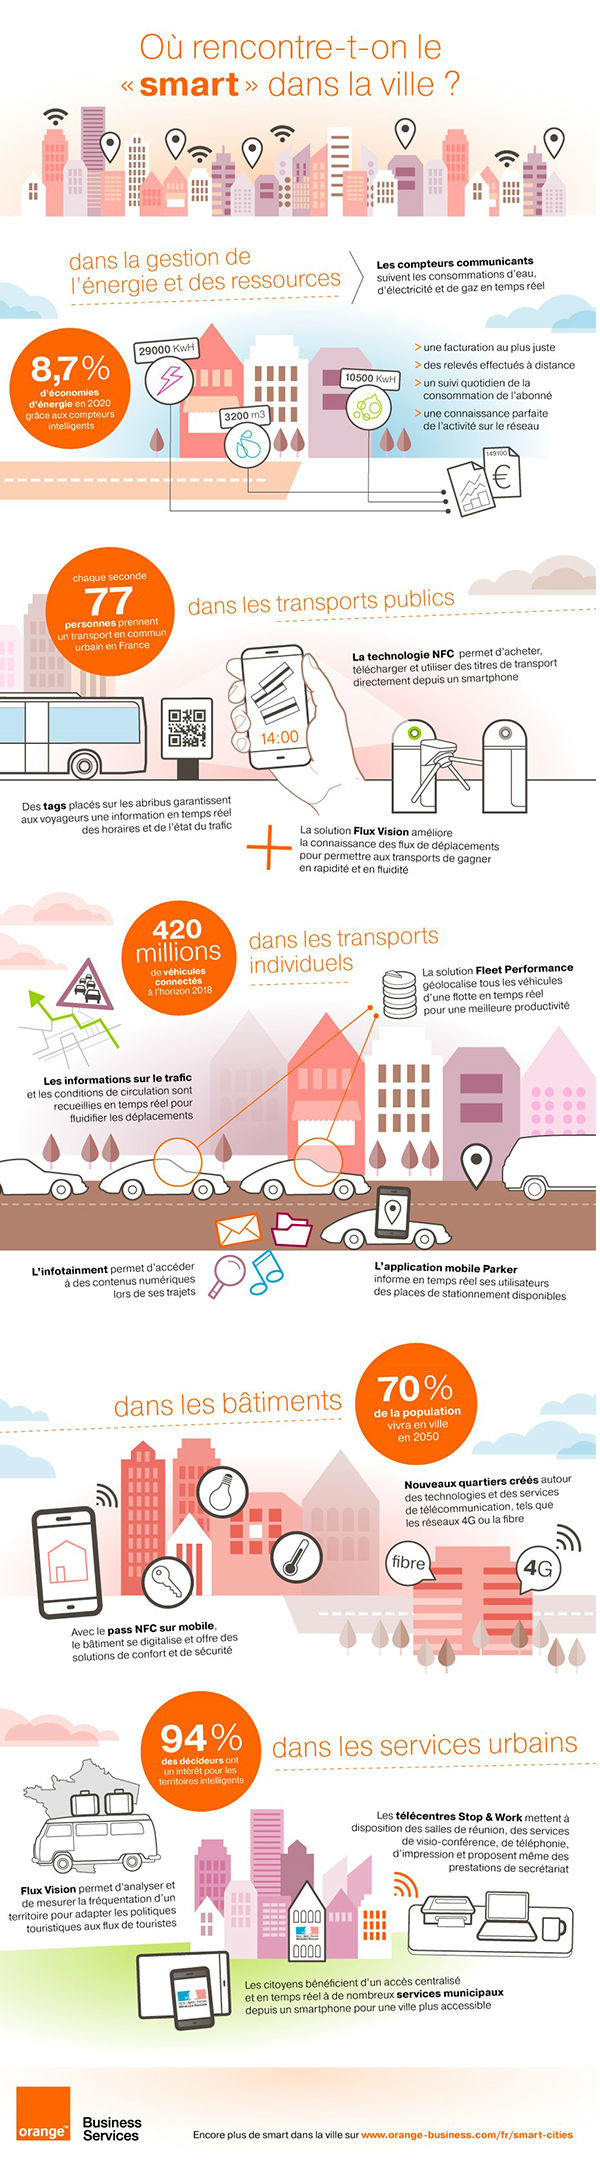 infographie smart cities